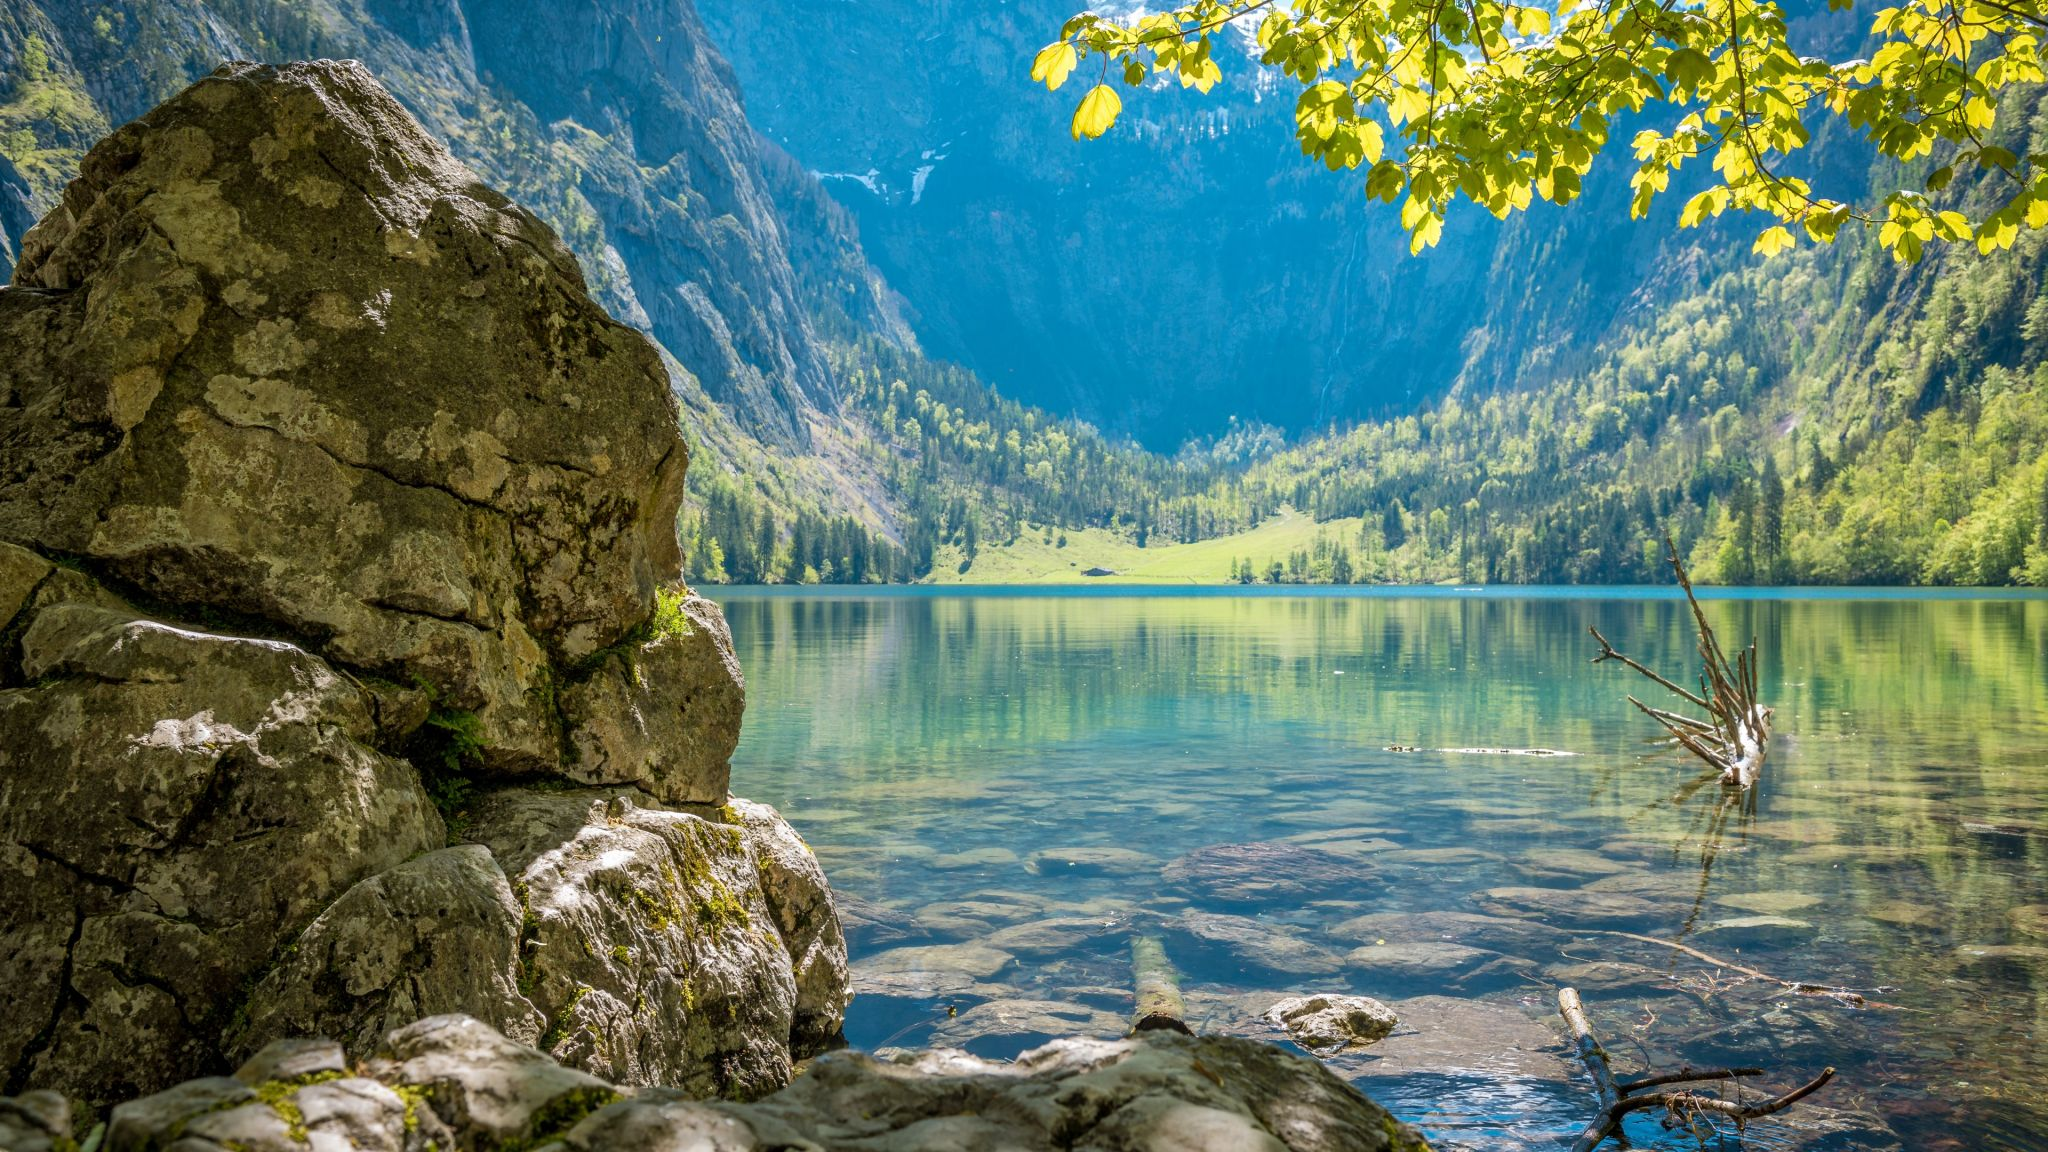 Obersee, Germany